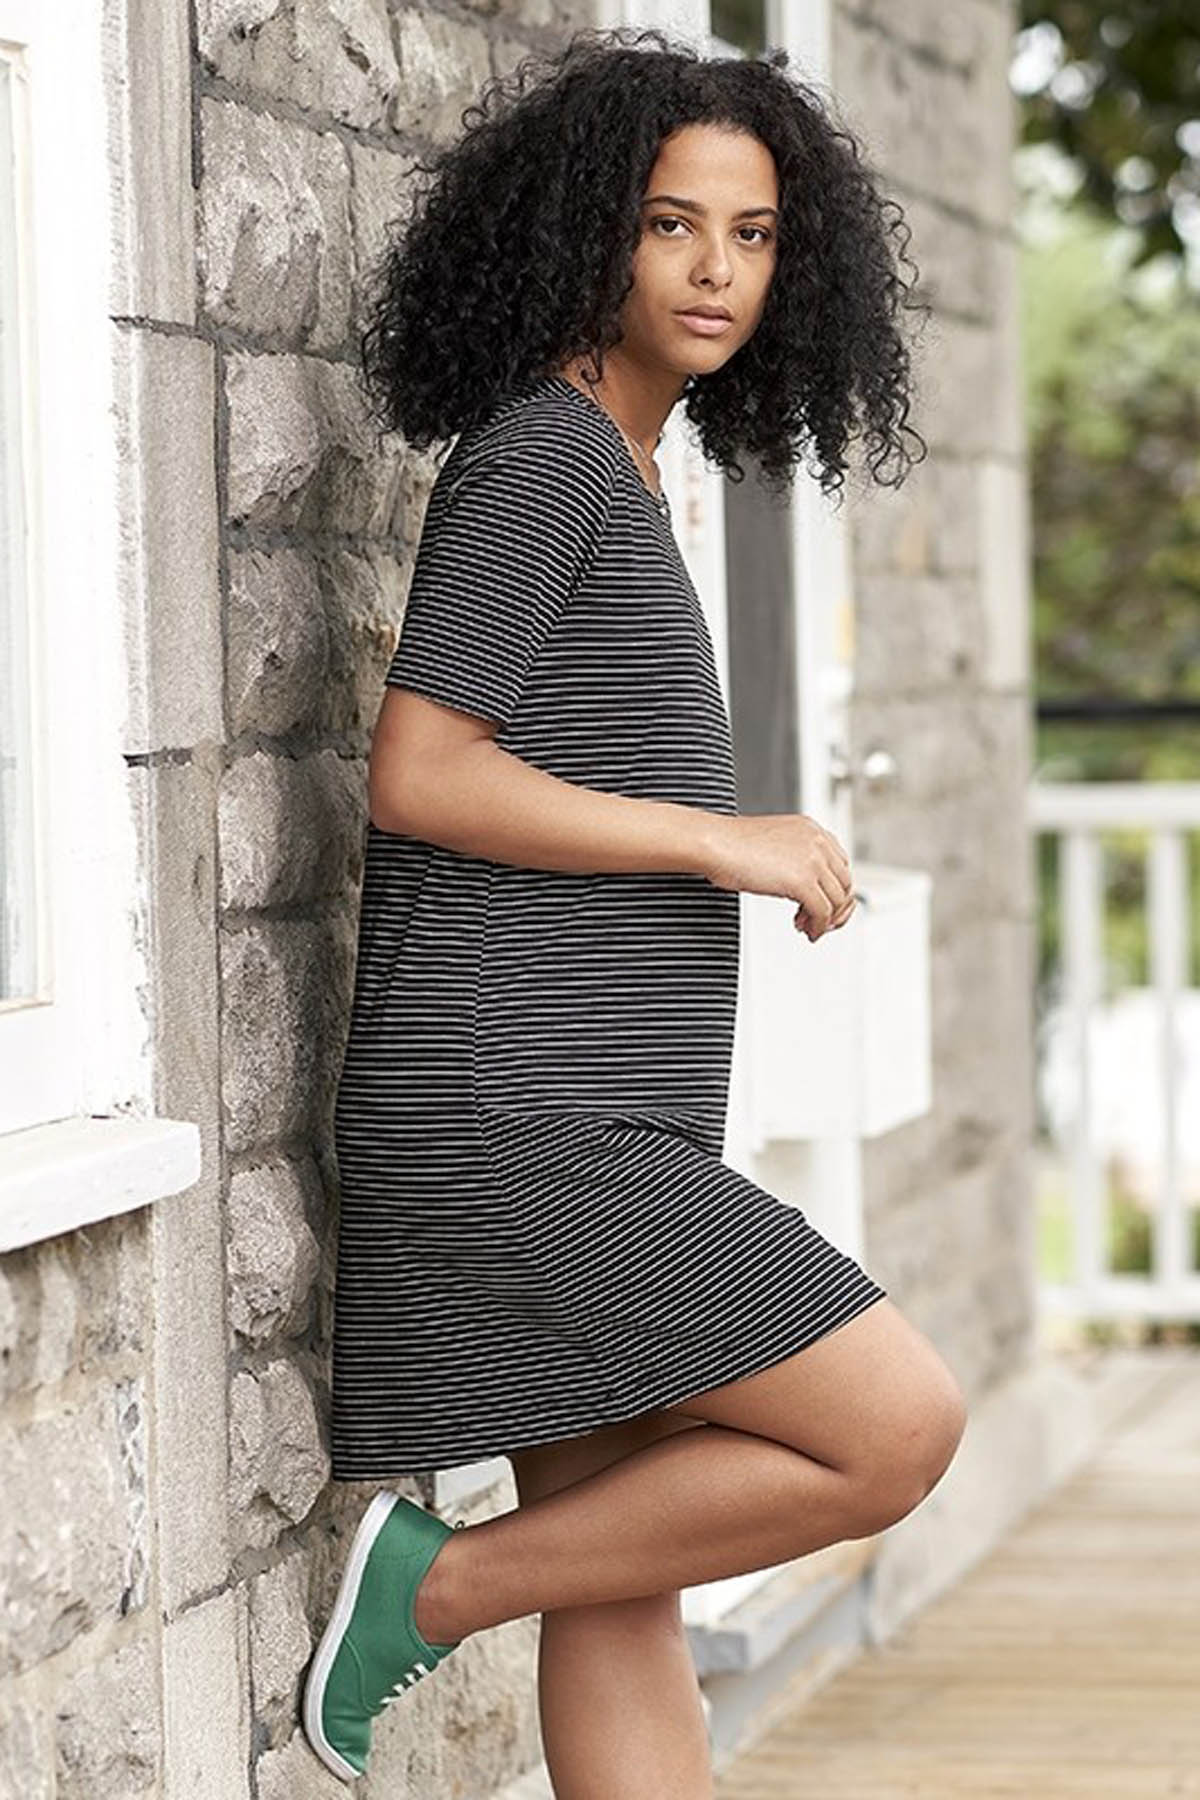 Finesse Dress by Rien ne se Perd, black and white horizontal stripe, T-shirt dress, short sleeves, sizes XS to XXL, made in Quebec